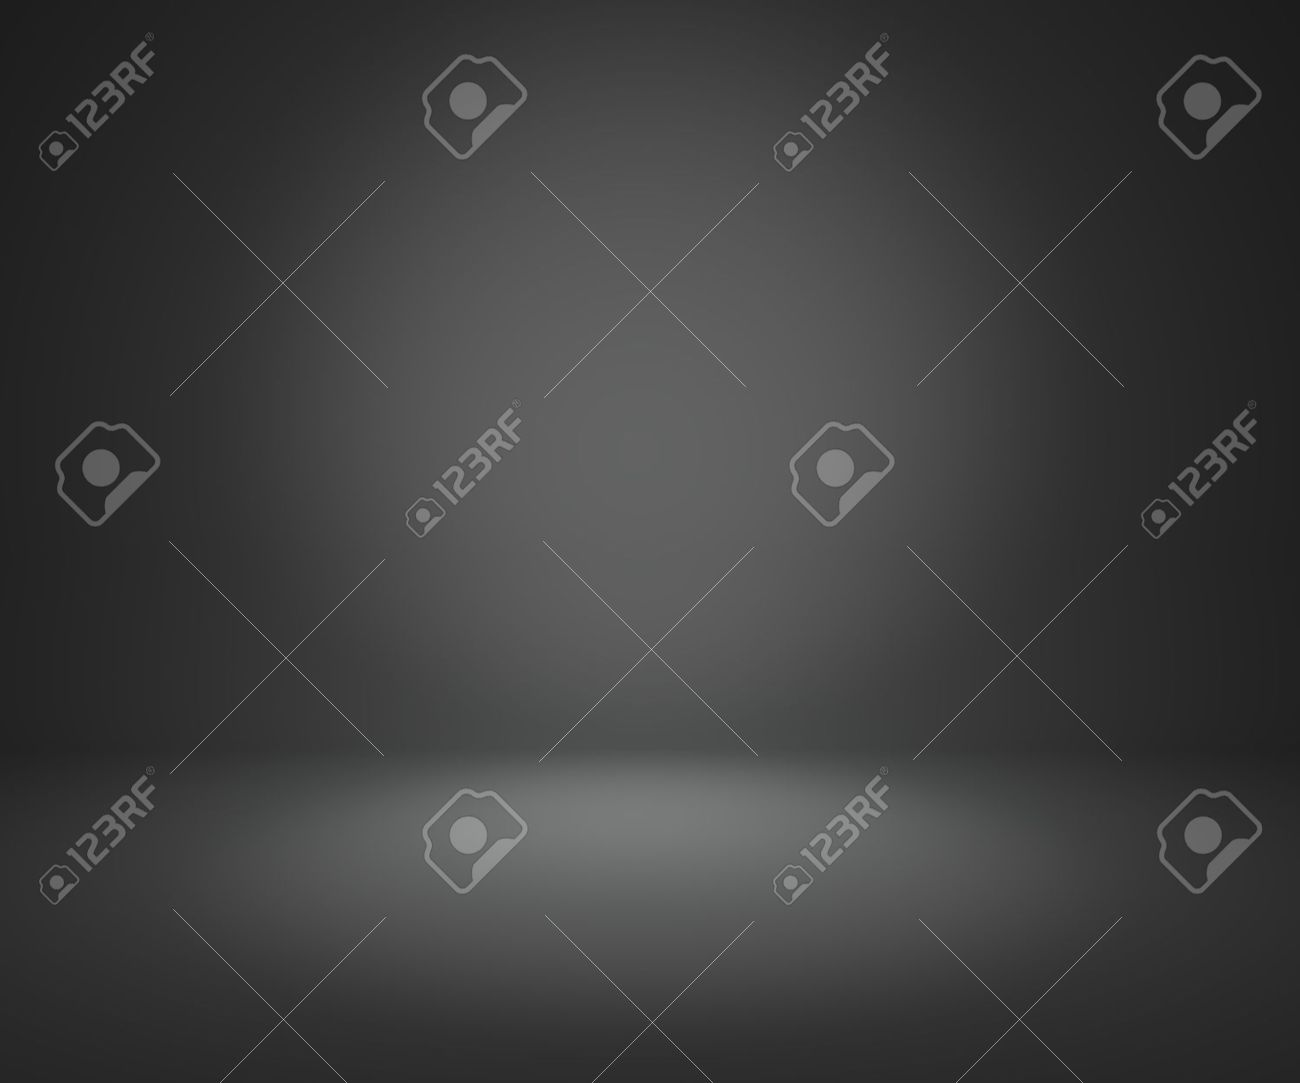 dark gray gradient abstract background rendering for display or montage your products - 51502027